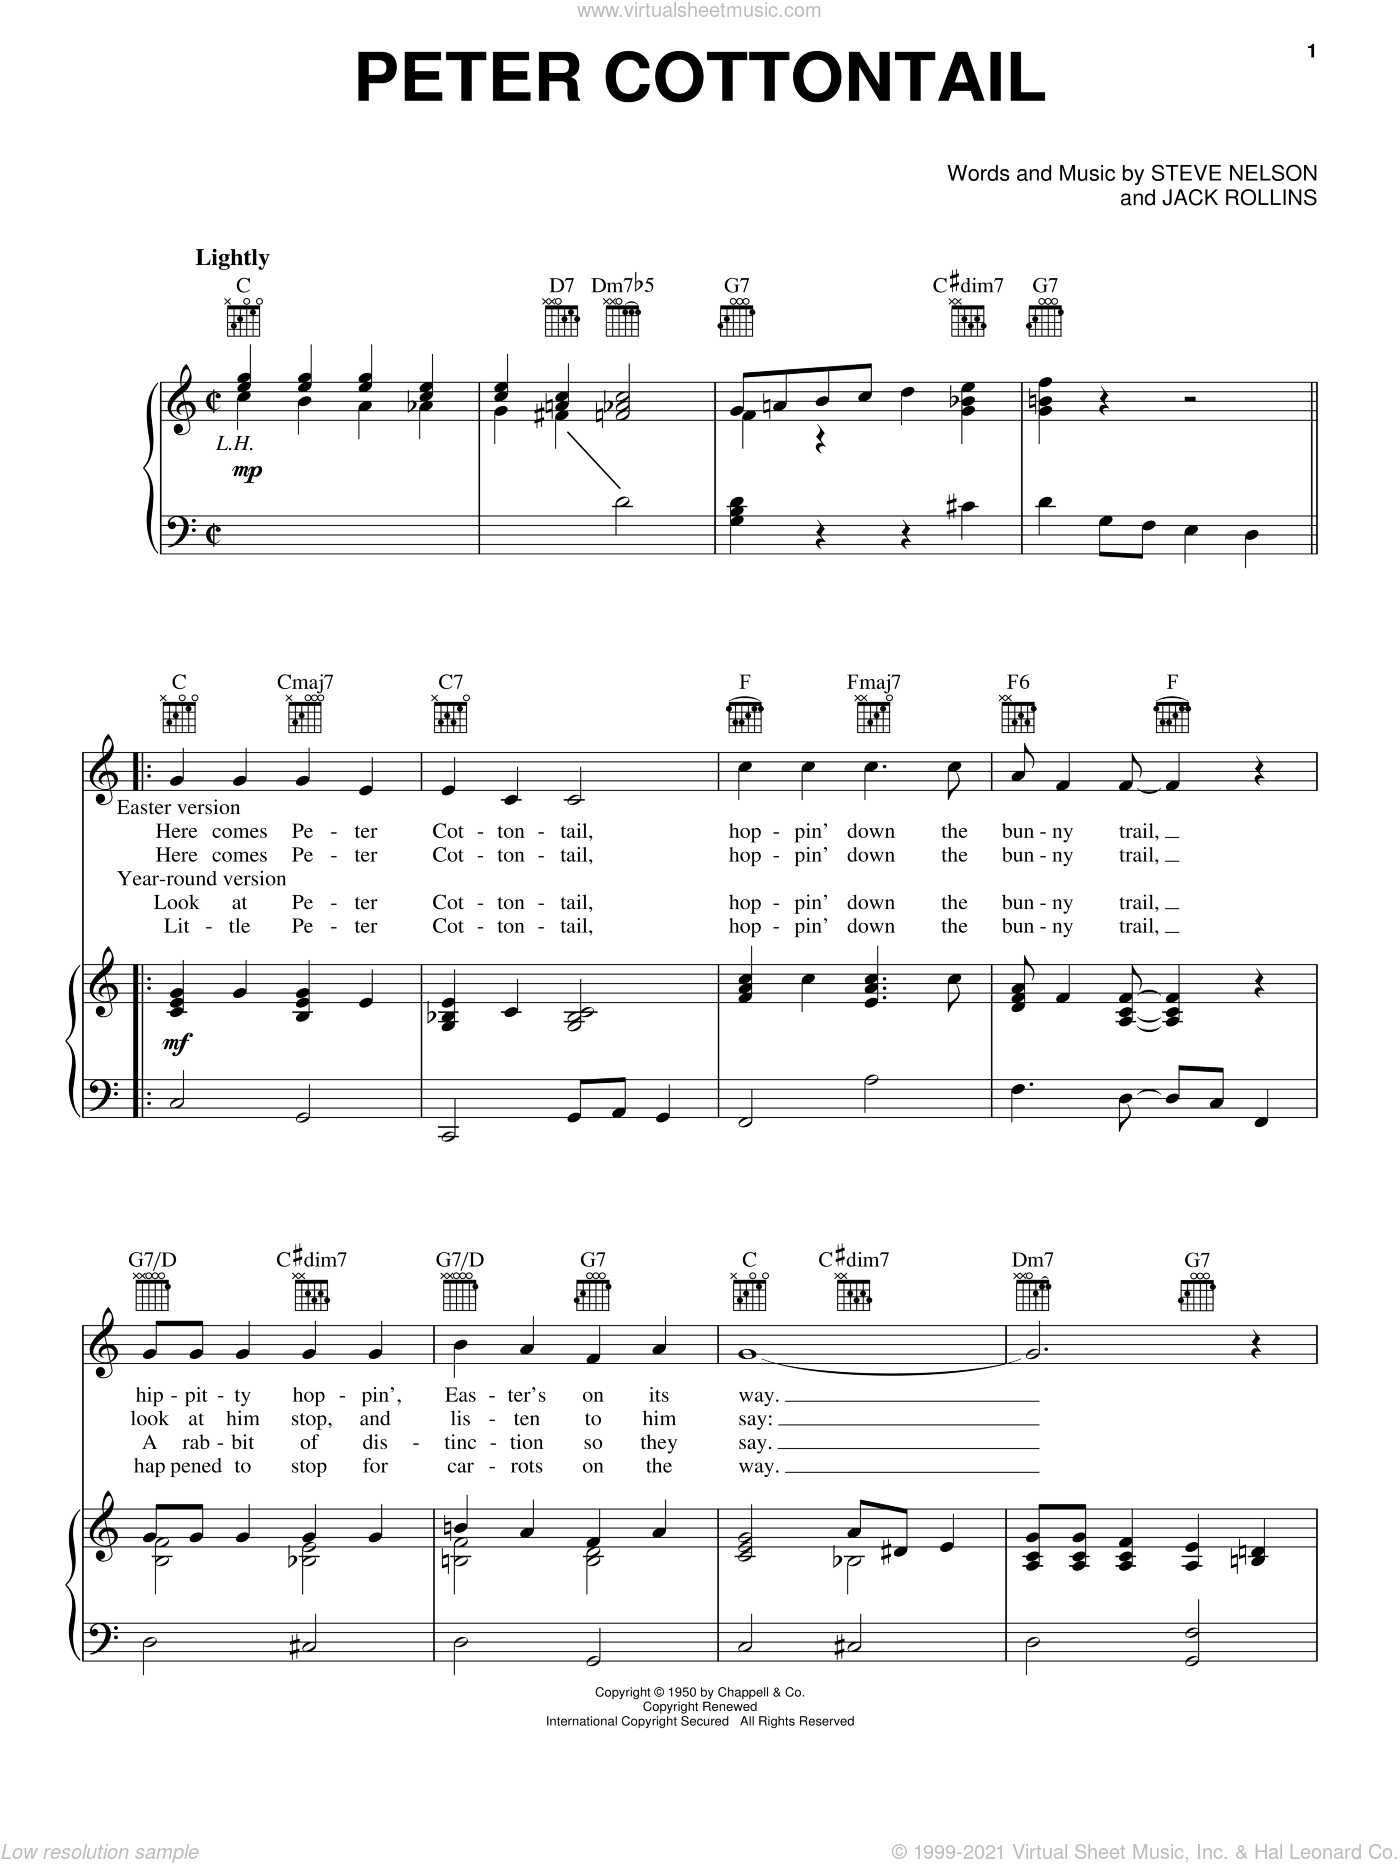 Peter Cottontail sheet music for voice, piano or guitar by Jack Rollins and Steve Nelson, intermediate skill level